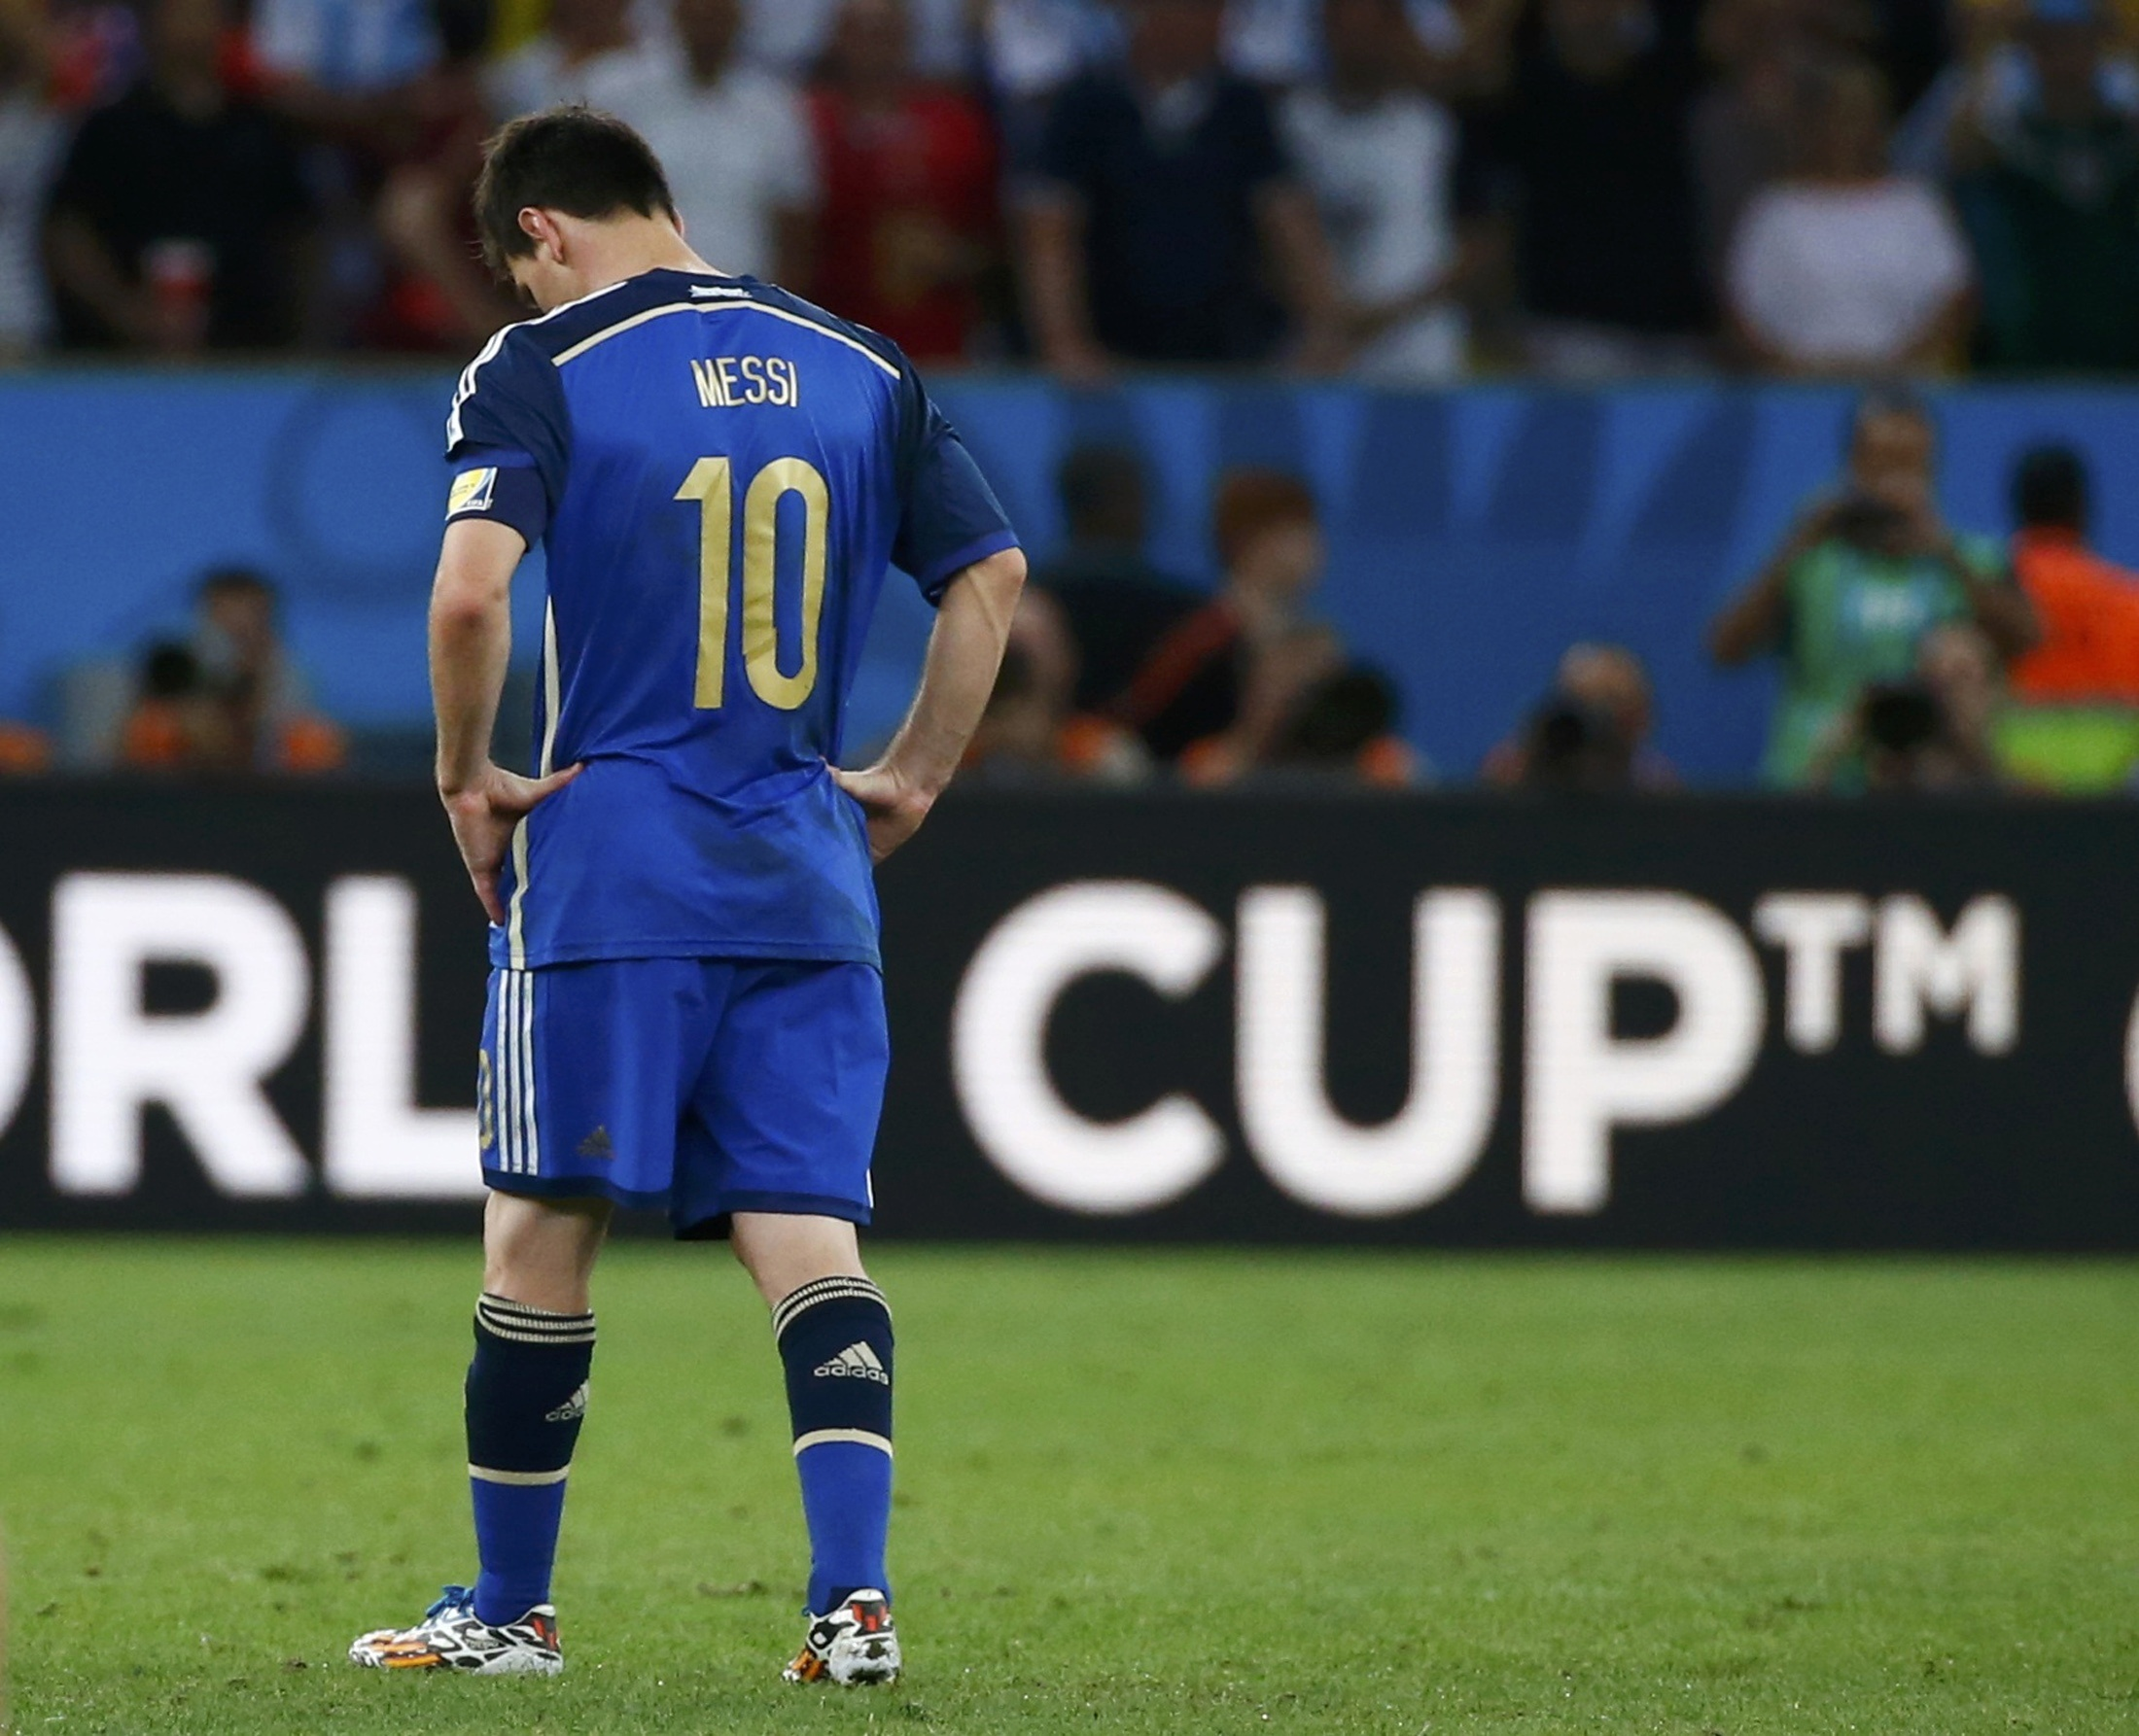 Argentina's Lionel Messi reacts after the whistle at extra time in the 2014 World Cup final against Germany. Reuters